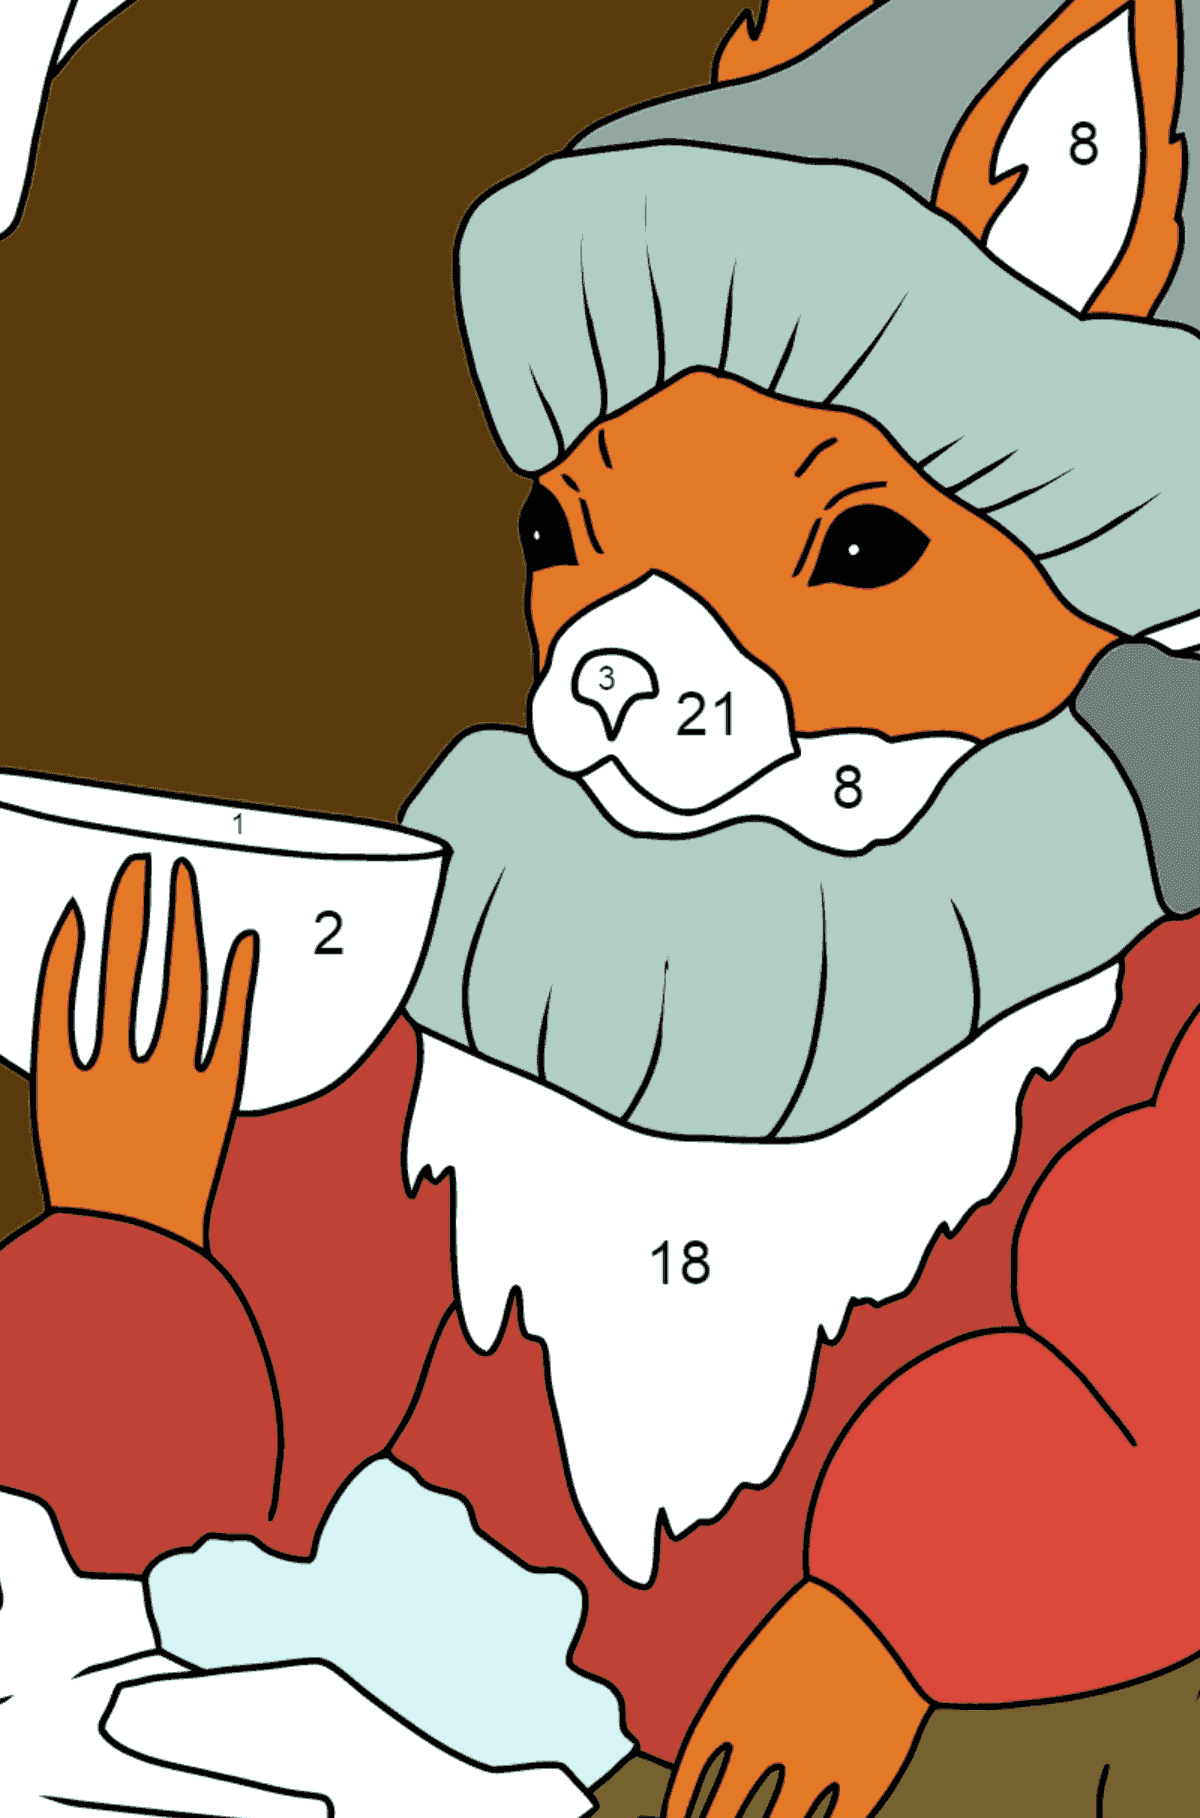 Winter Coloring Page - A Squirrel is Drinking Tea for Kids  - Color by Number